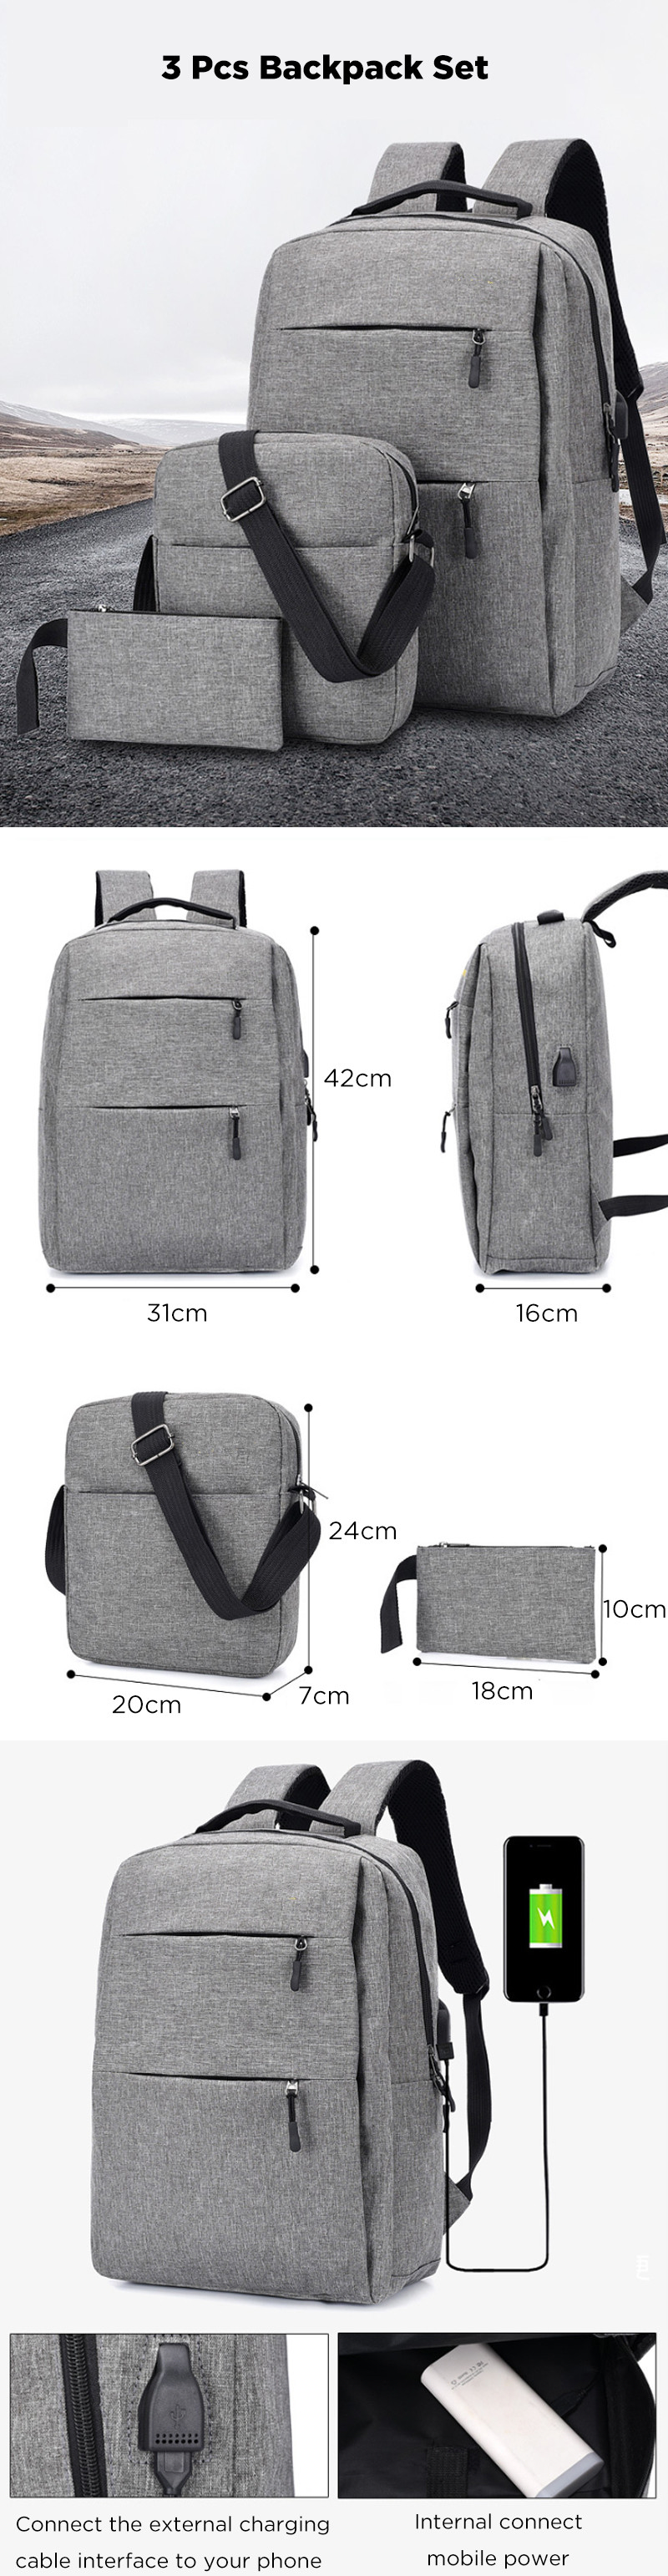 3Pcs Backpack Set 20.8L 15.6-inch USB Charging Laptop Bag Waterproof Shoulder Bag Pen Bag For Camping Travel